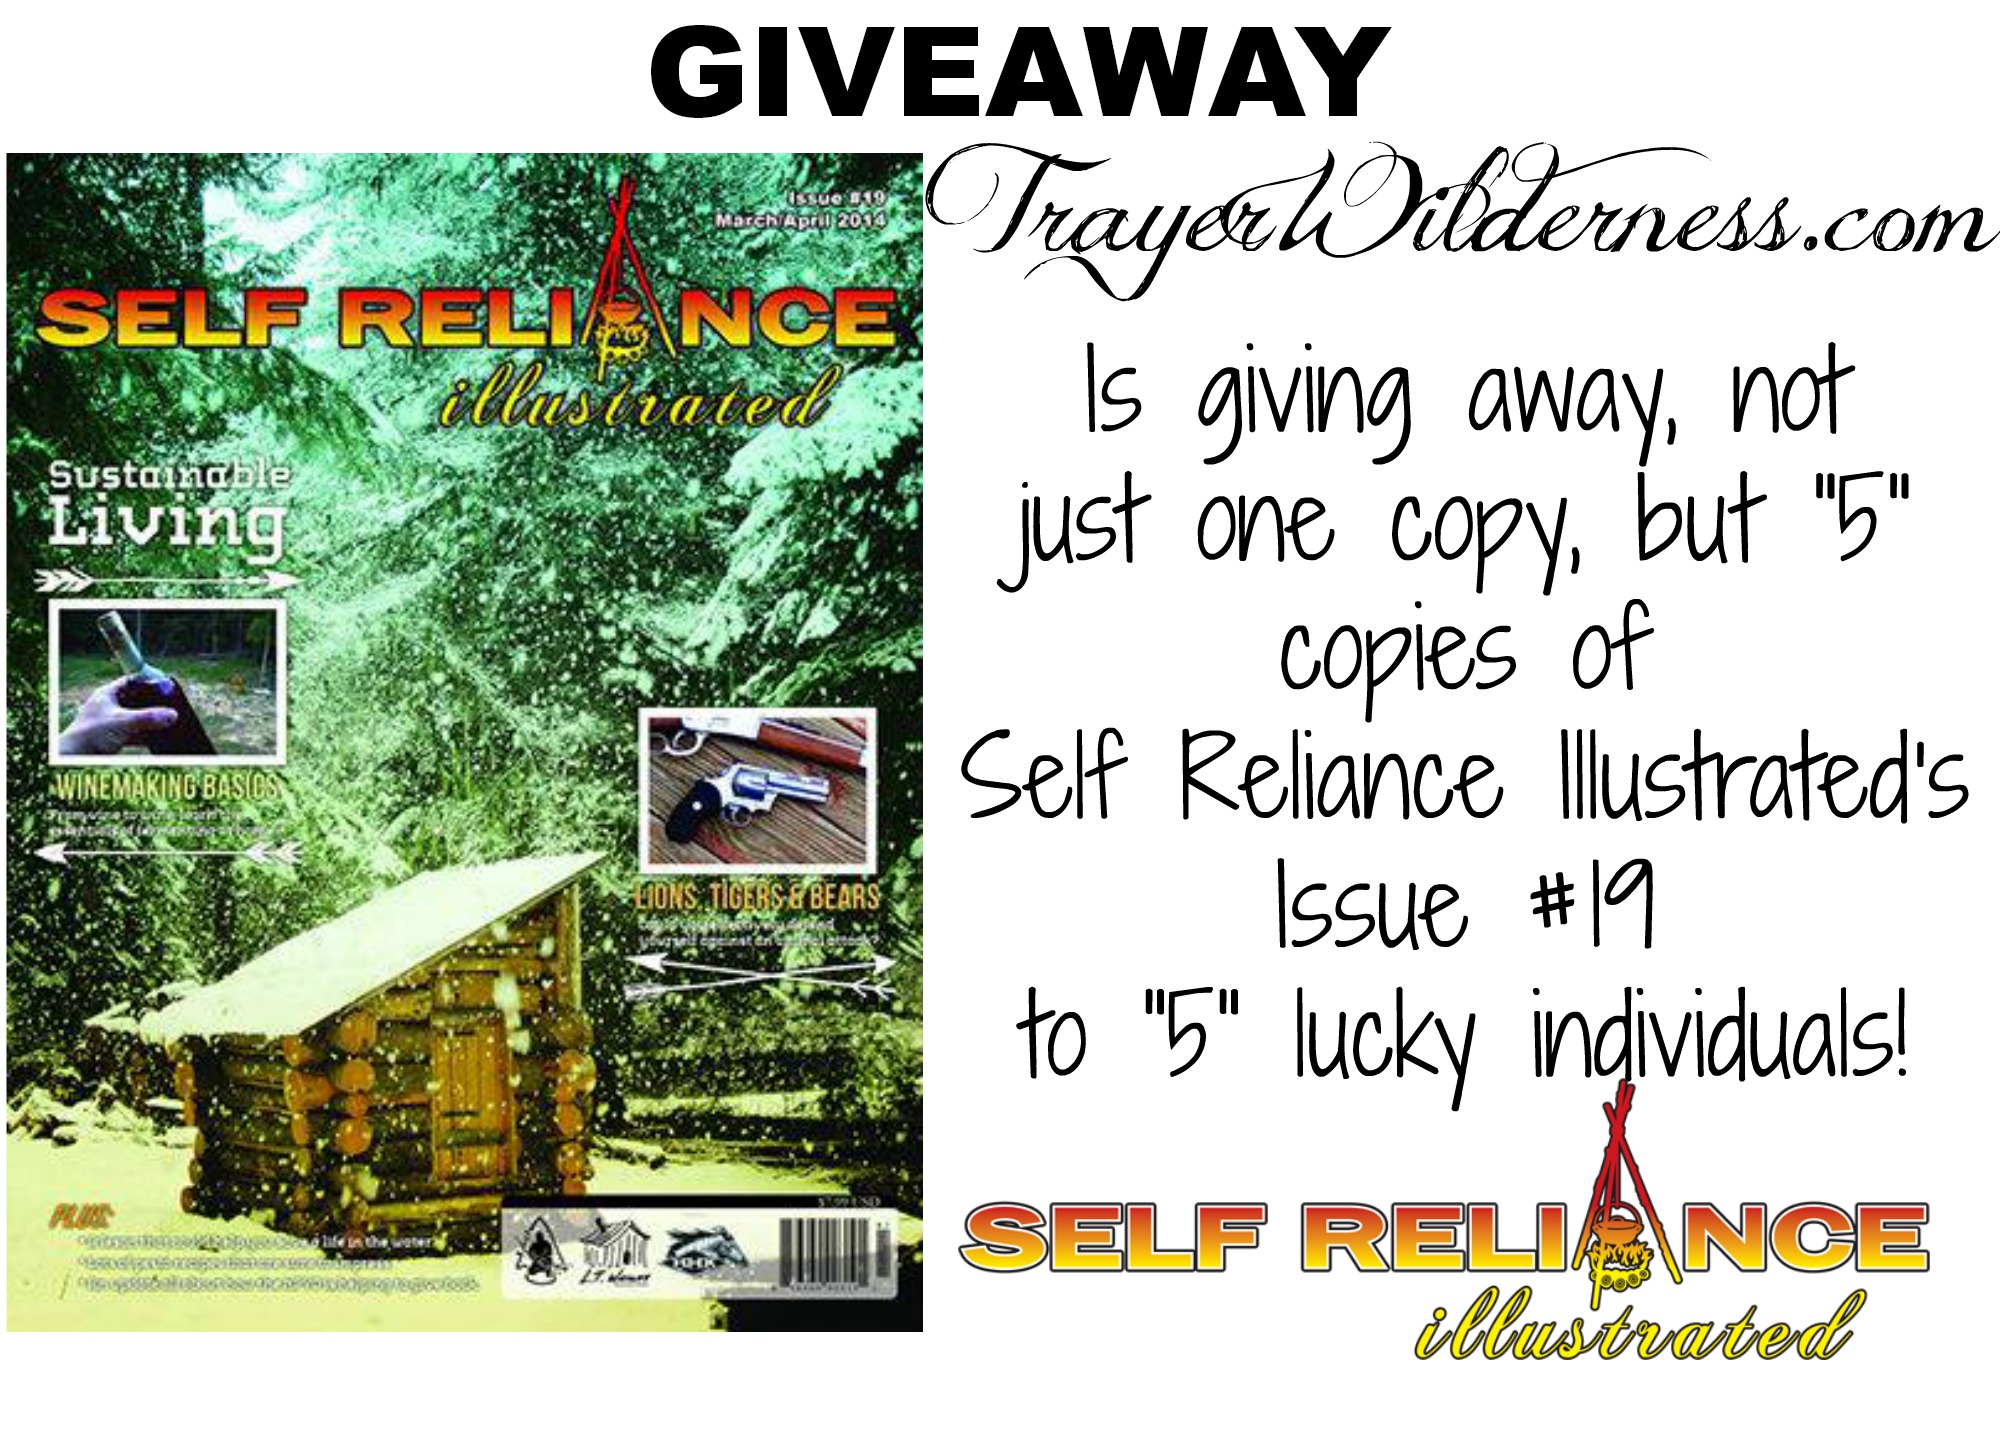 Self Reliance Illustrated Magazine Issue #19 Giveaway